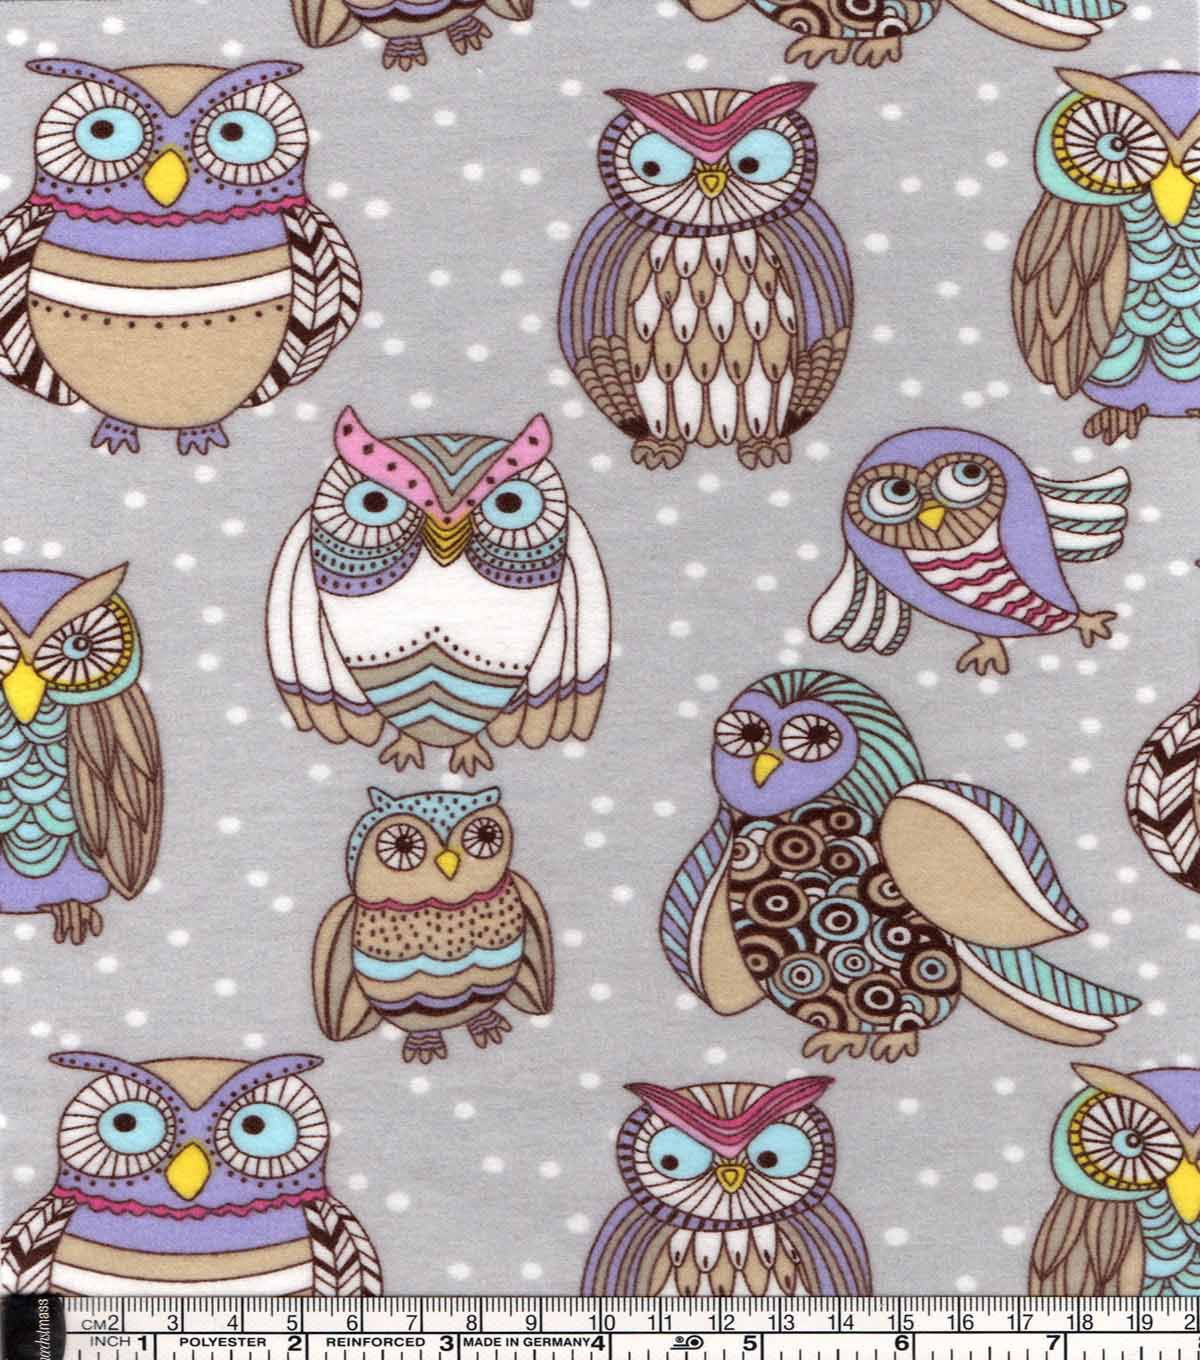 Snuggle flannel fabriccolorful owl friends friends flannels and